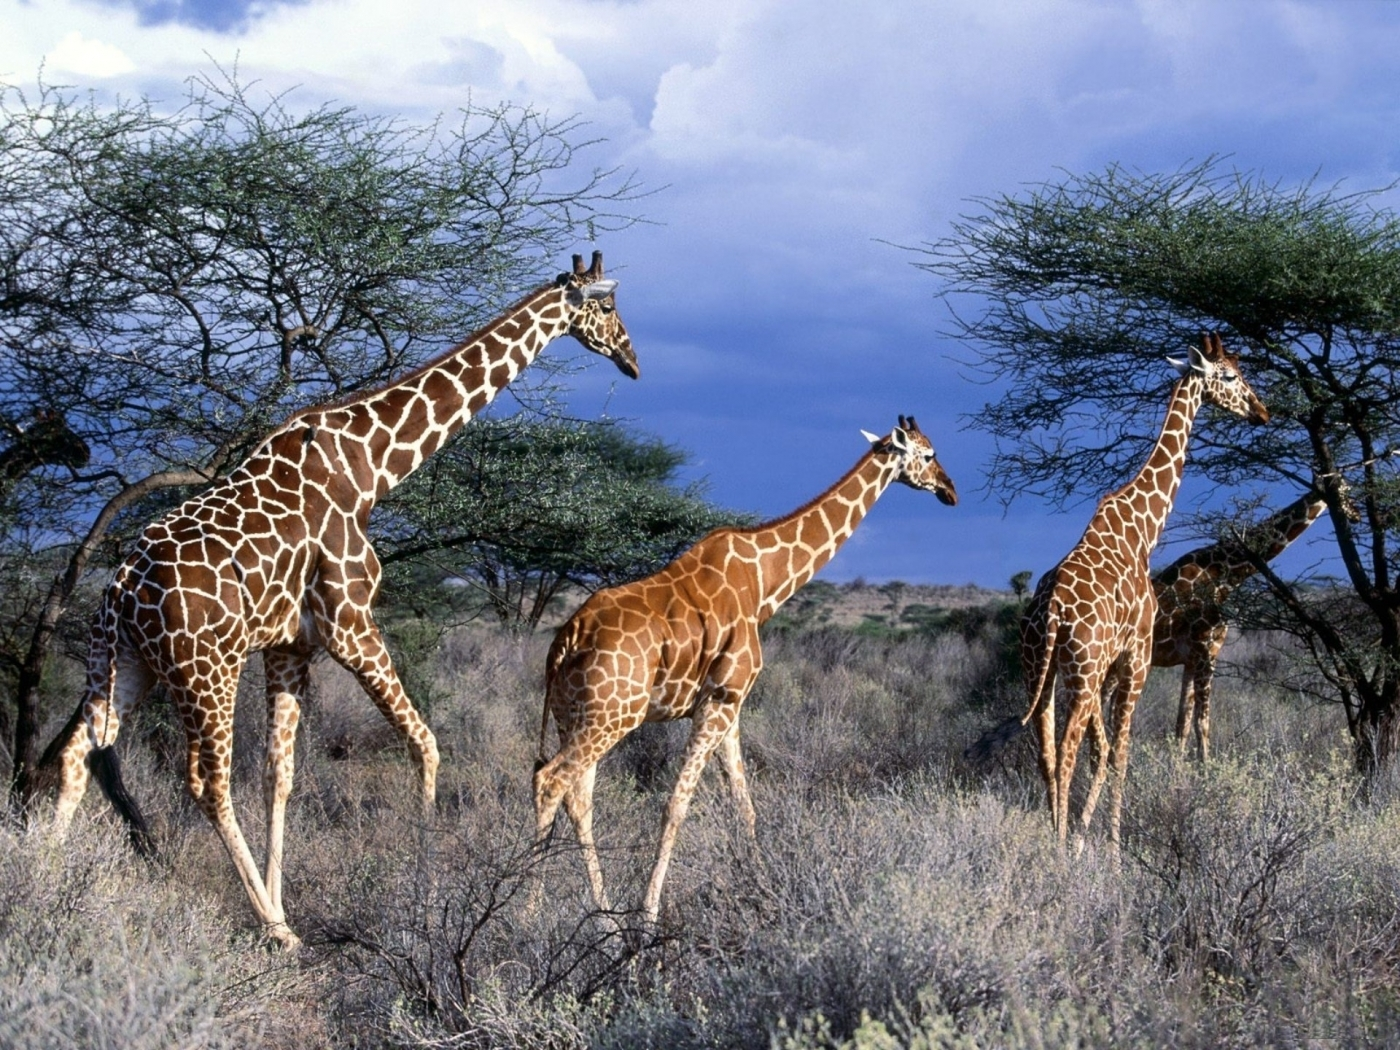 45984 download wallpaper Animals, Nature, Giraffes screensavers and pictures for free